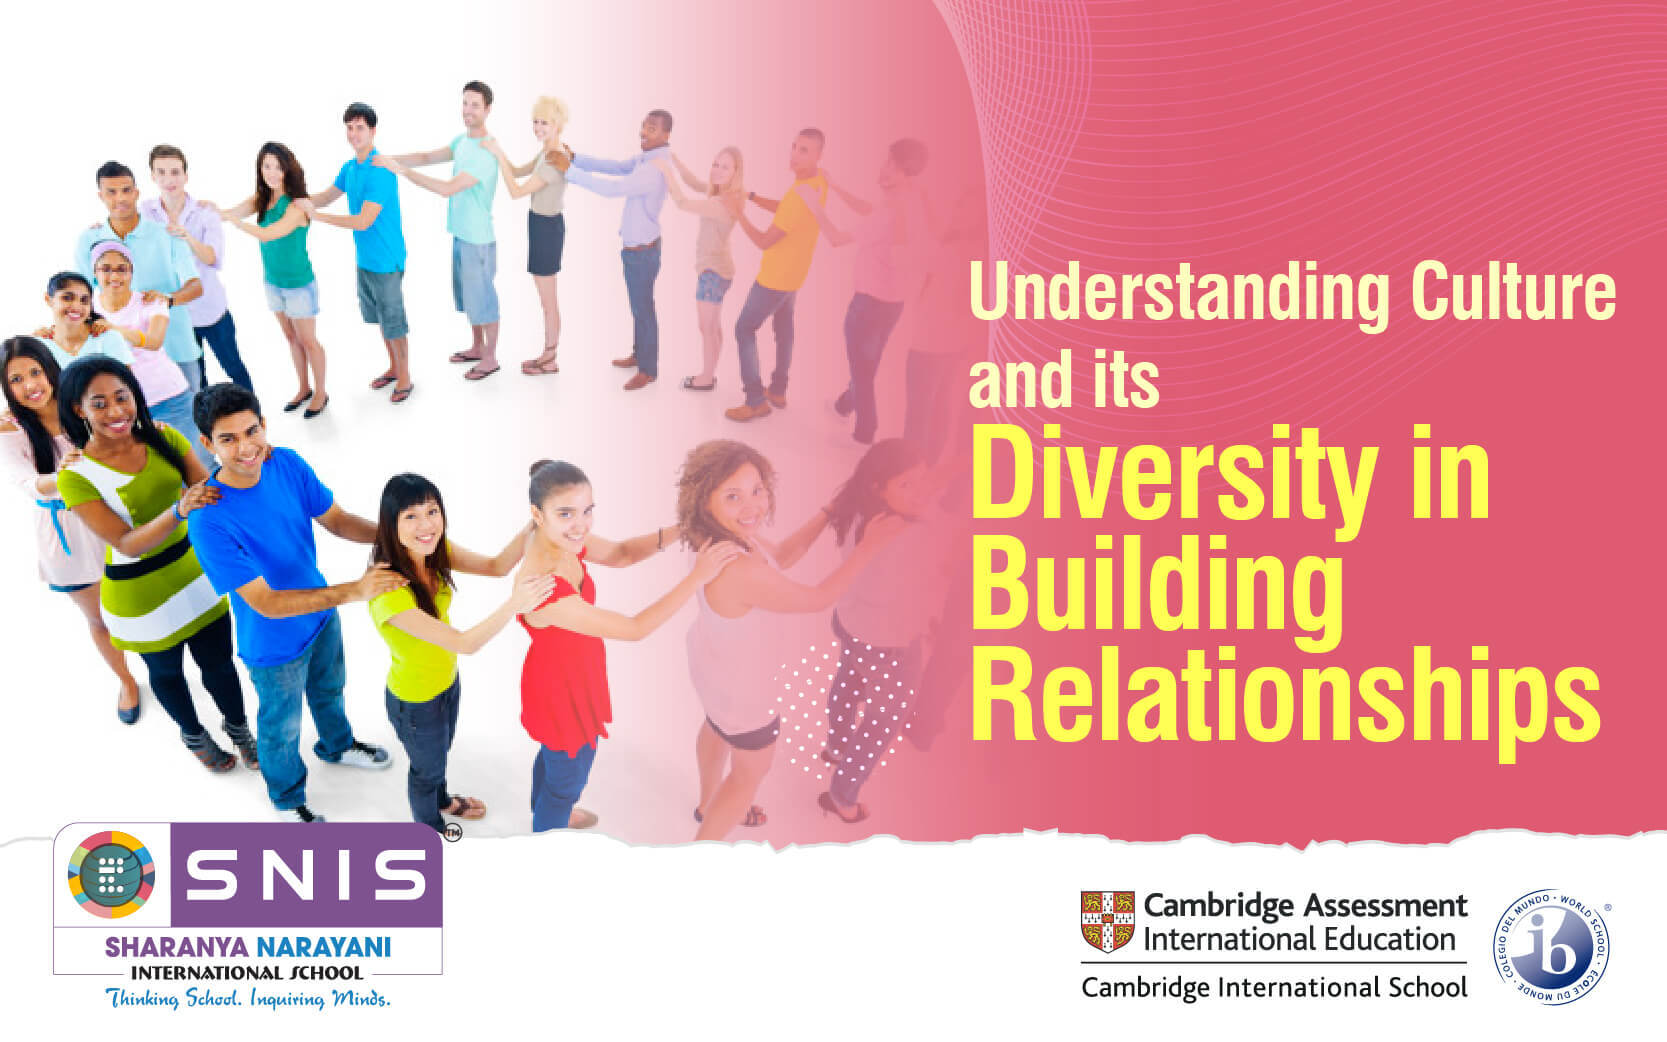 Understanding Culture and its Diversity in Building Relationships by SNIS International school in bangalore